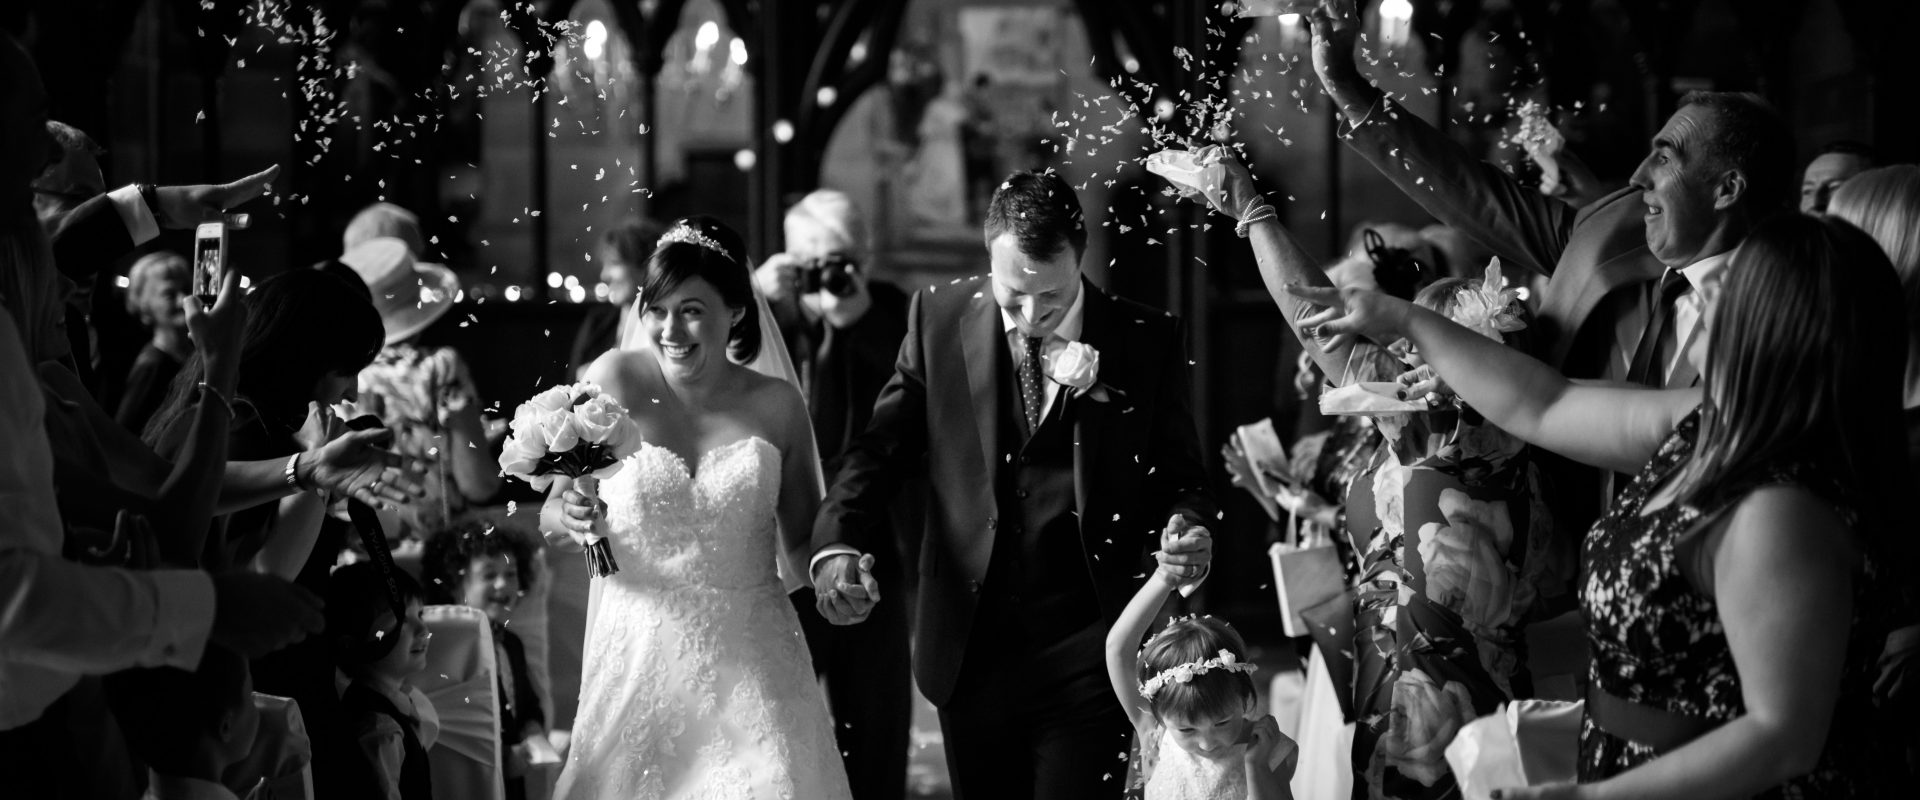 black and white confetti shot indoors as bride and groom walk down the aisle